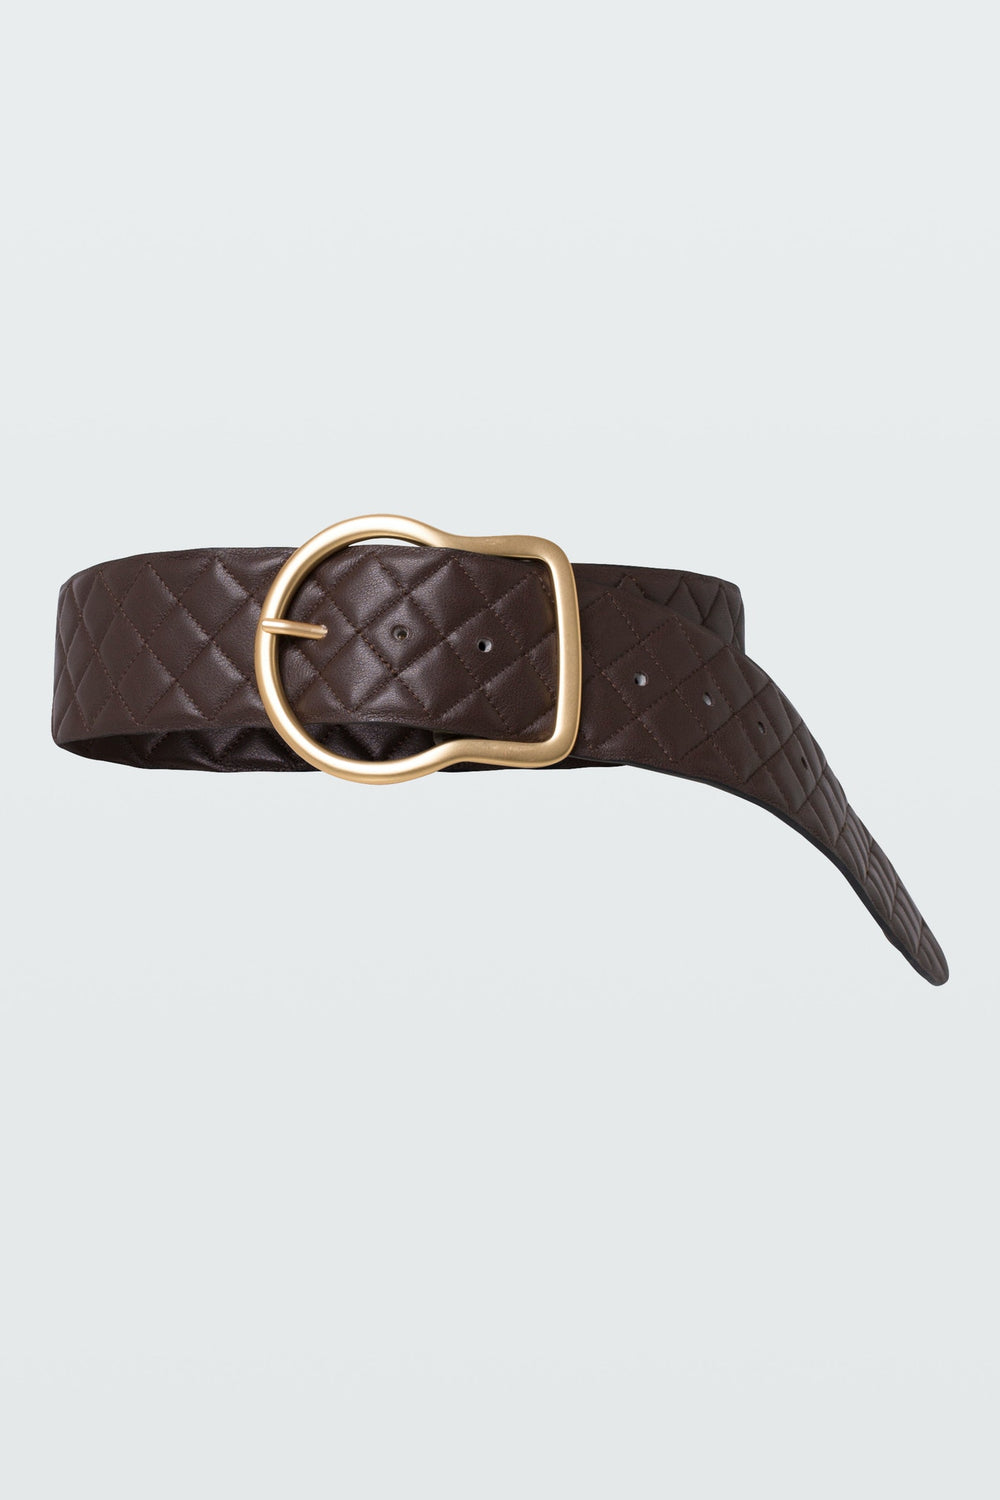 DOROTHEE SCHUMACHER SOFT SENSATION Stichted Belt 6Cm